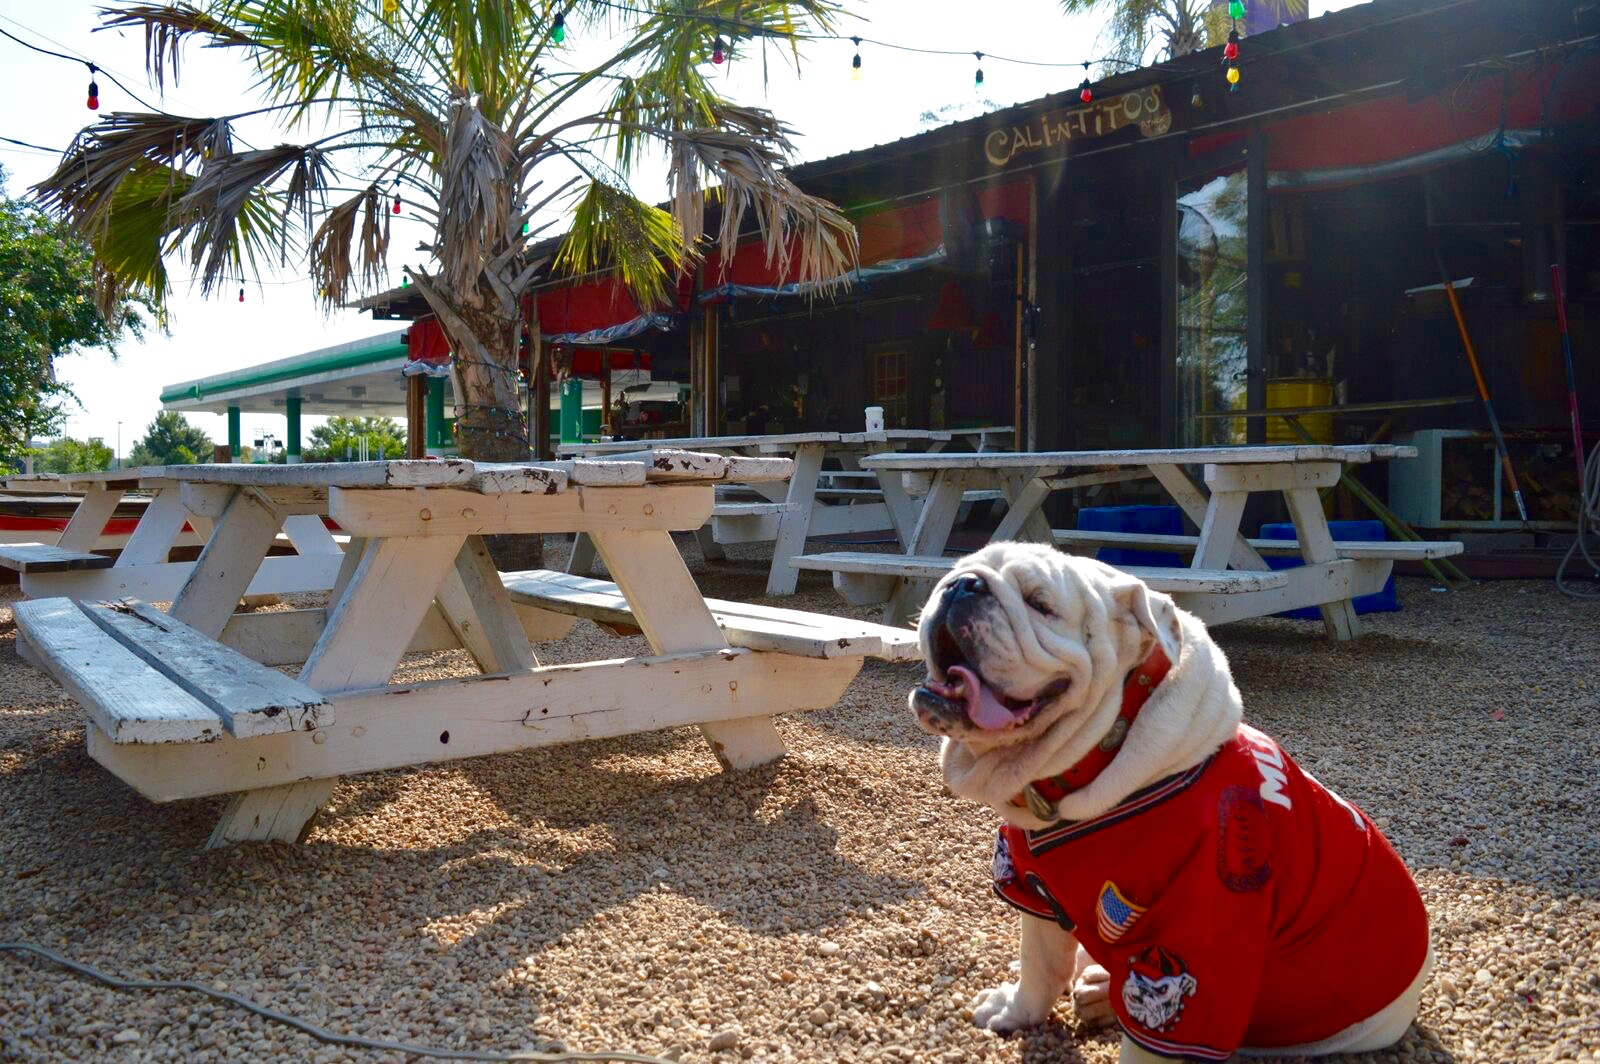 Pet-friendly dining at Cali-N-Tito's in Athens, Georgia